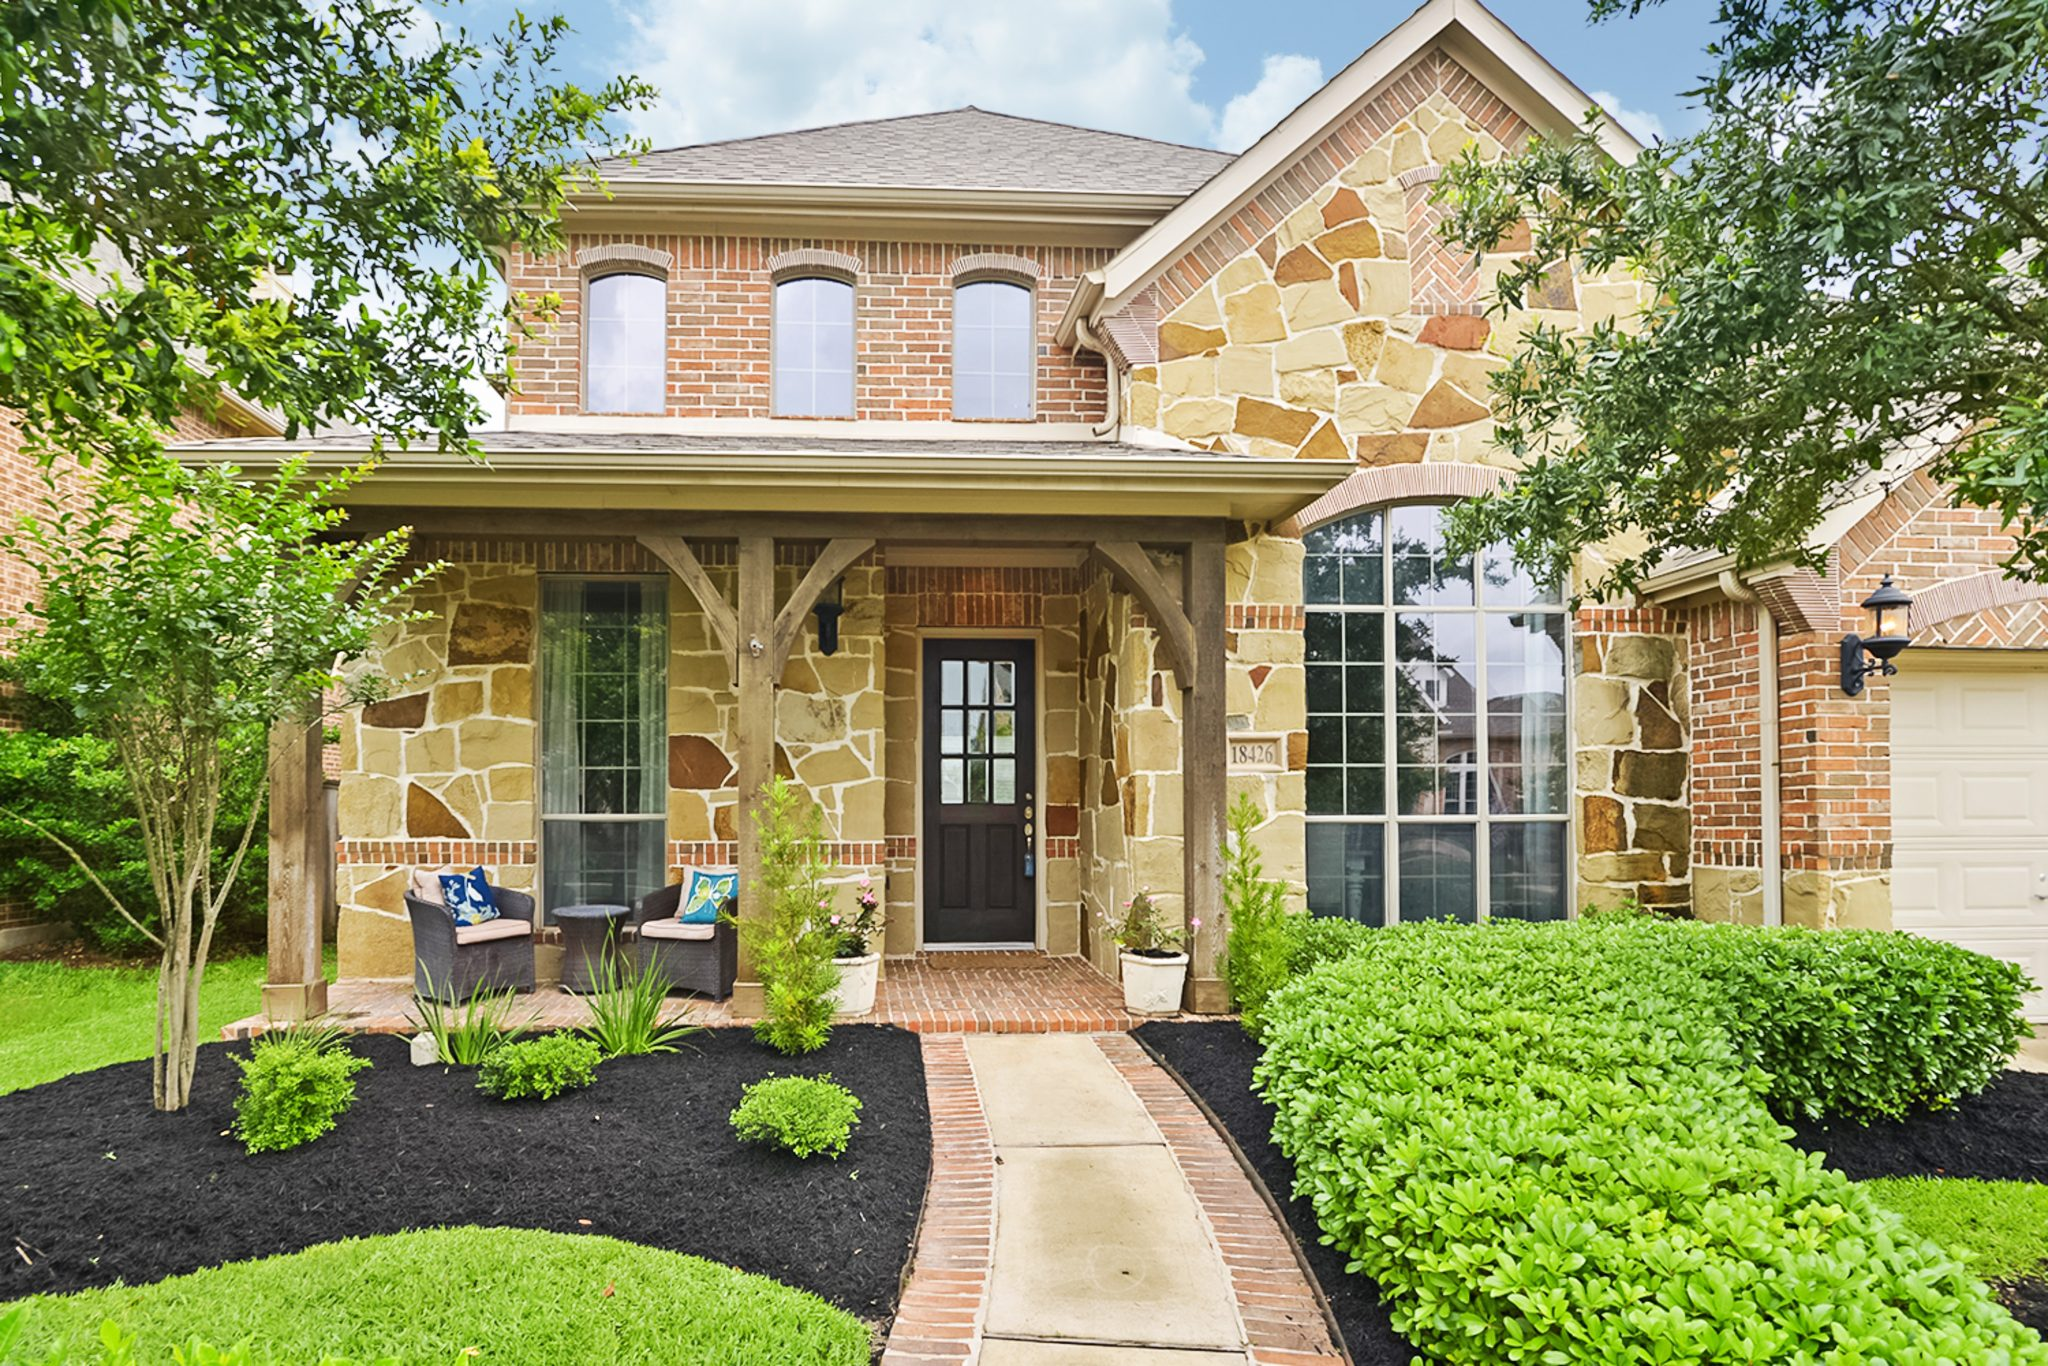 Brick house in Cypress TX, selling a house, The Lippincott Team